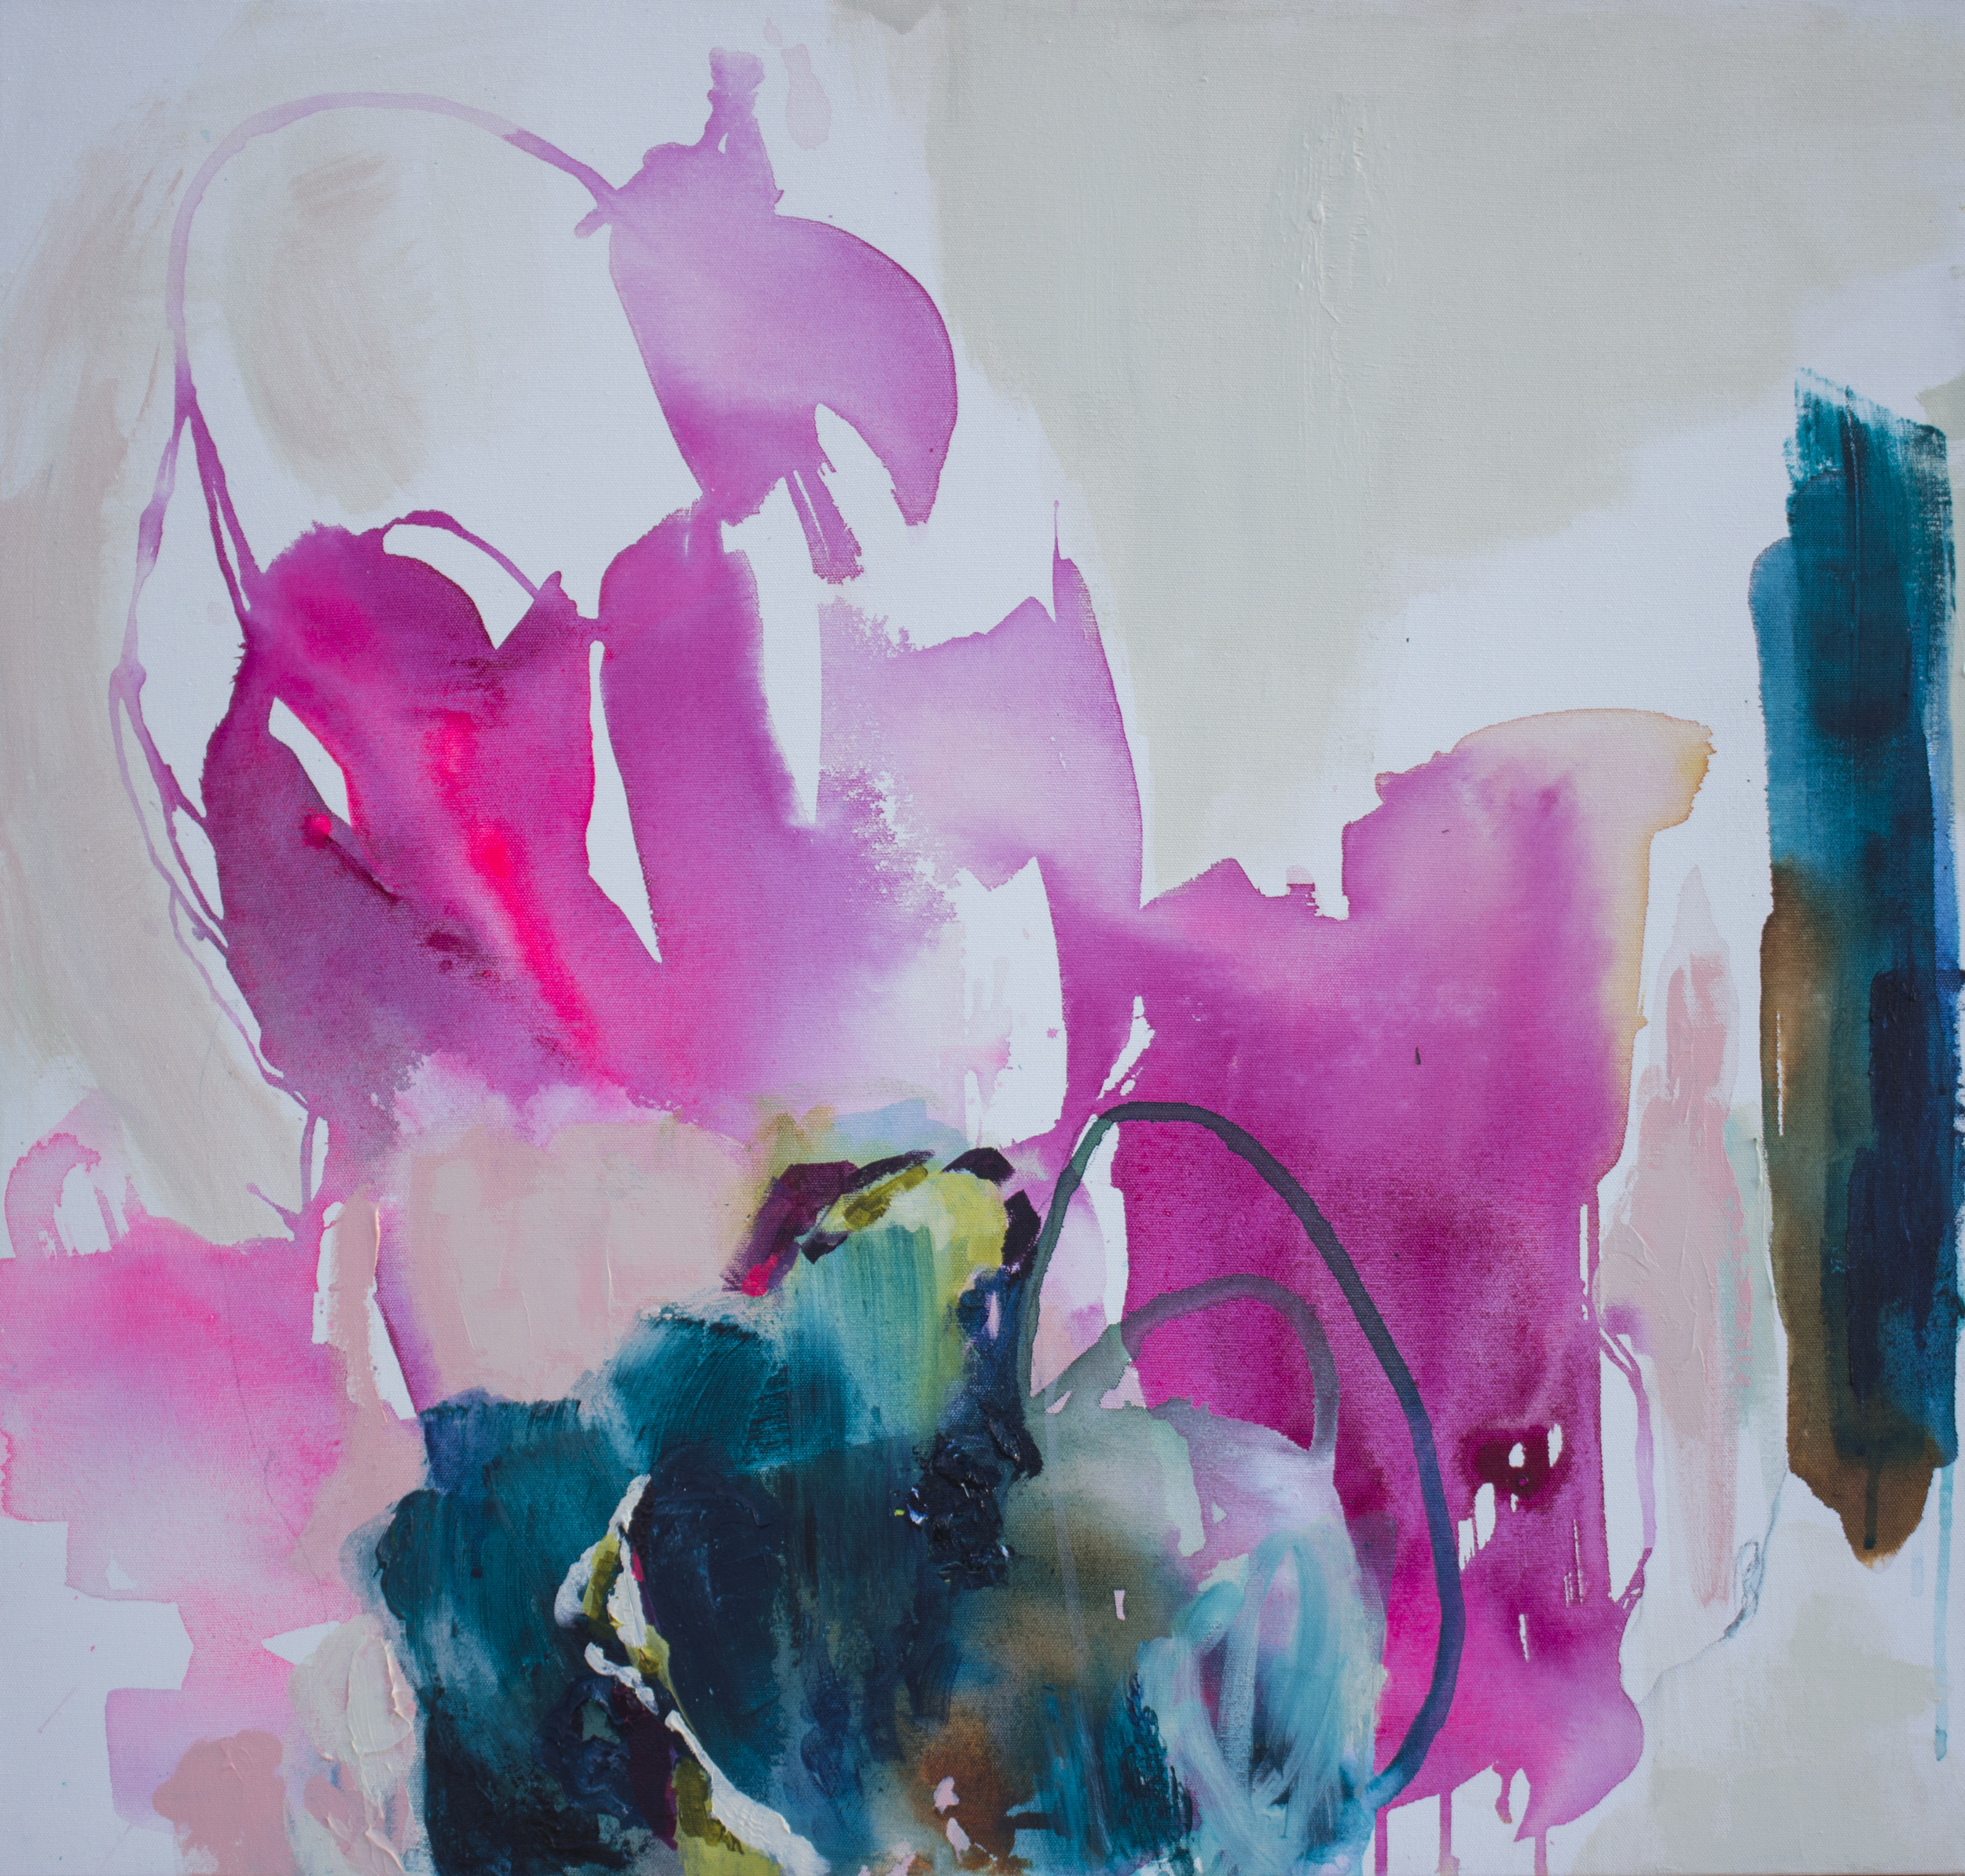 Tryst 27 in. x 29 in. acrylic on canvas